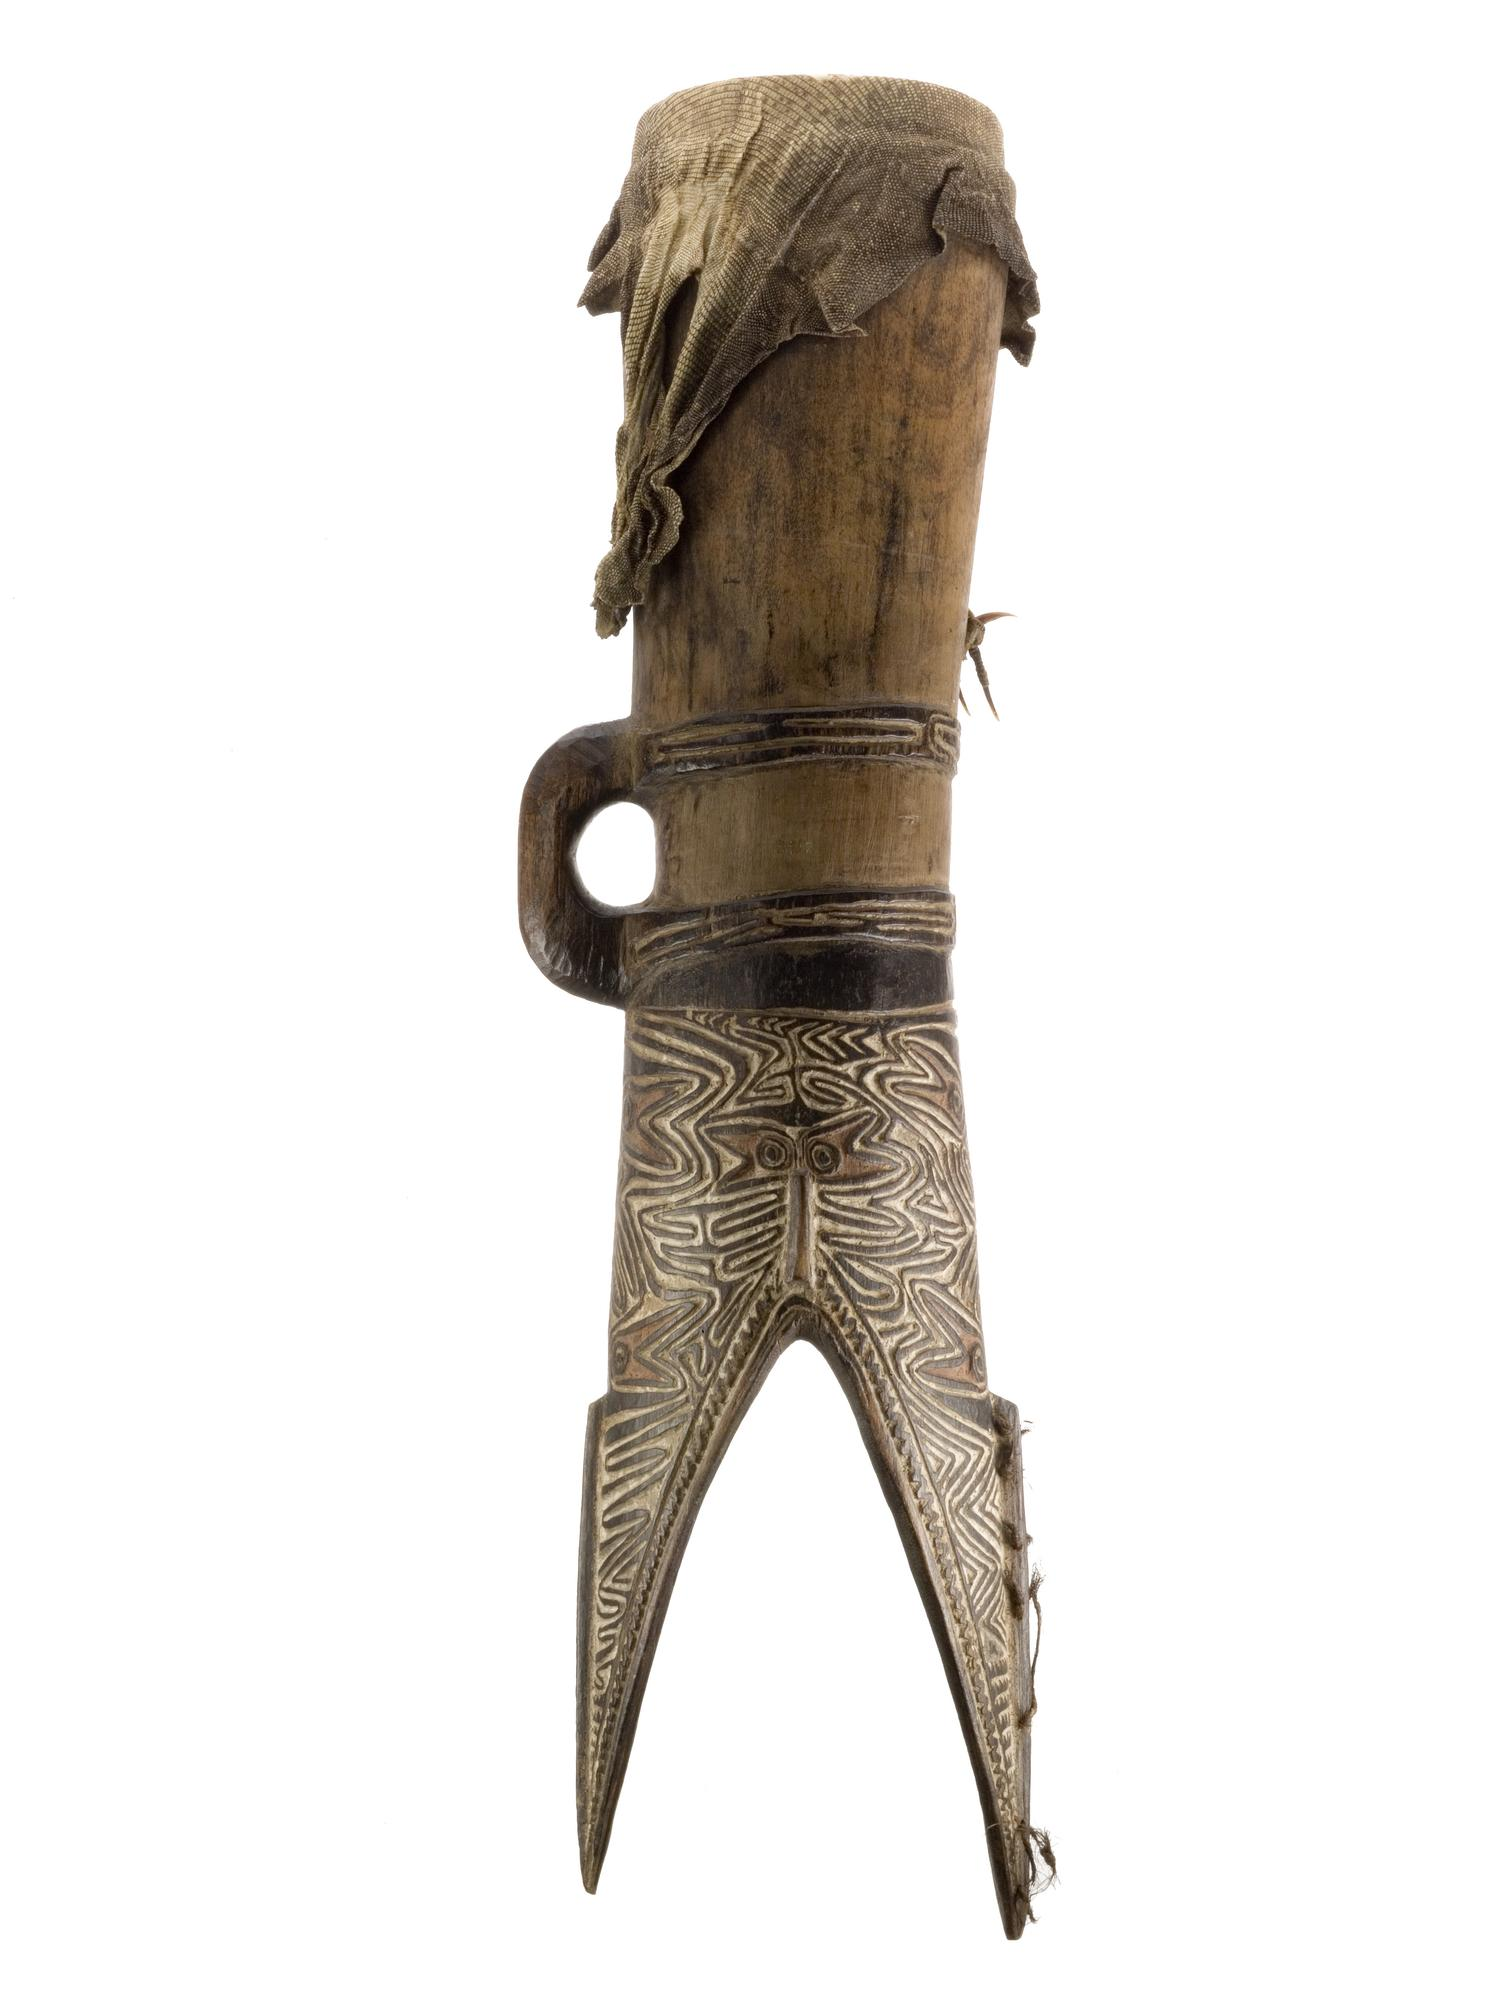 Drum carved from a tree trunk with lizard skin membrane: Melanesia, Papua New Guinea, Gulf Province, Vailala, Elema 19th century.